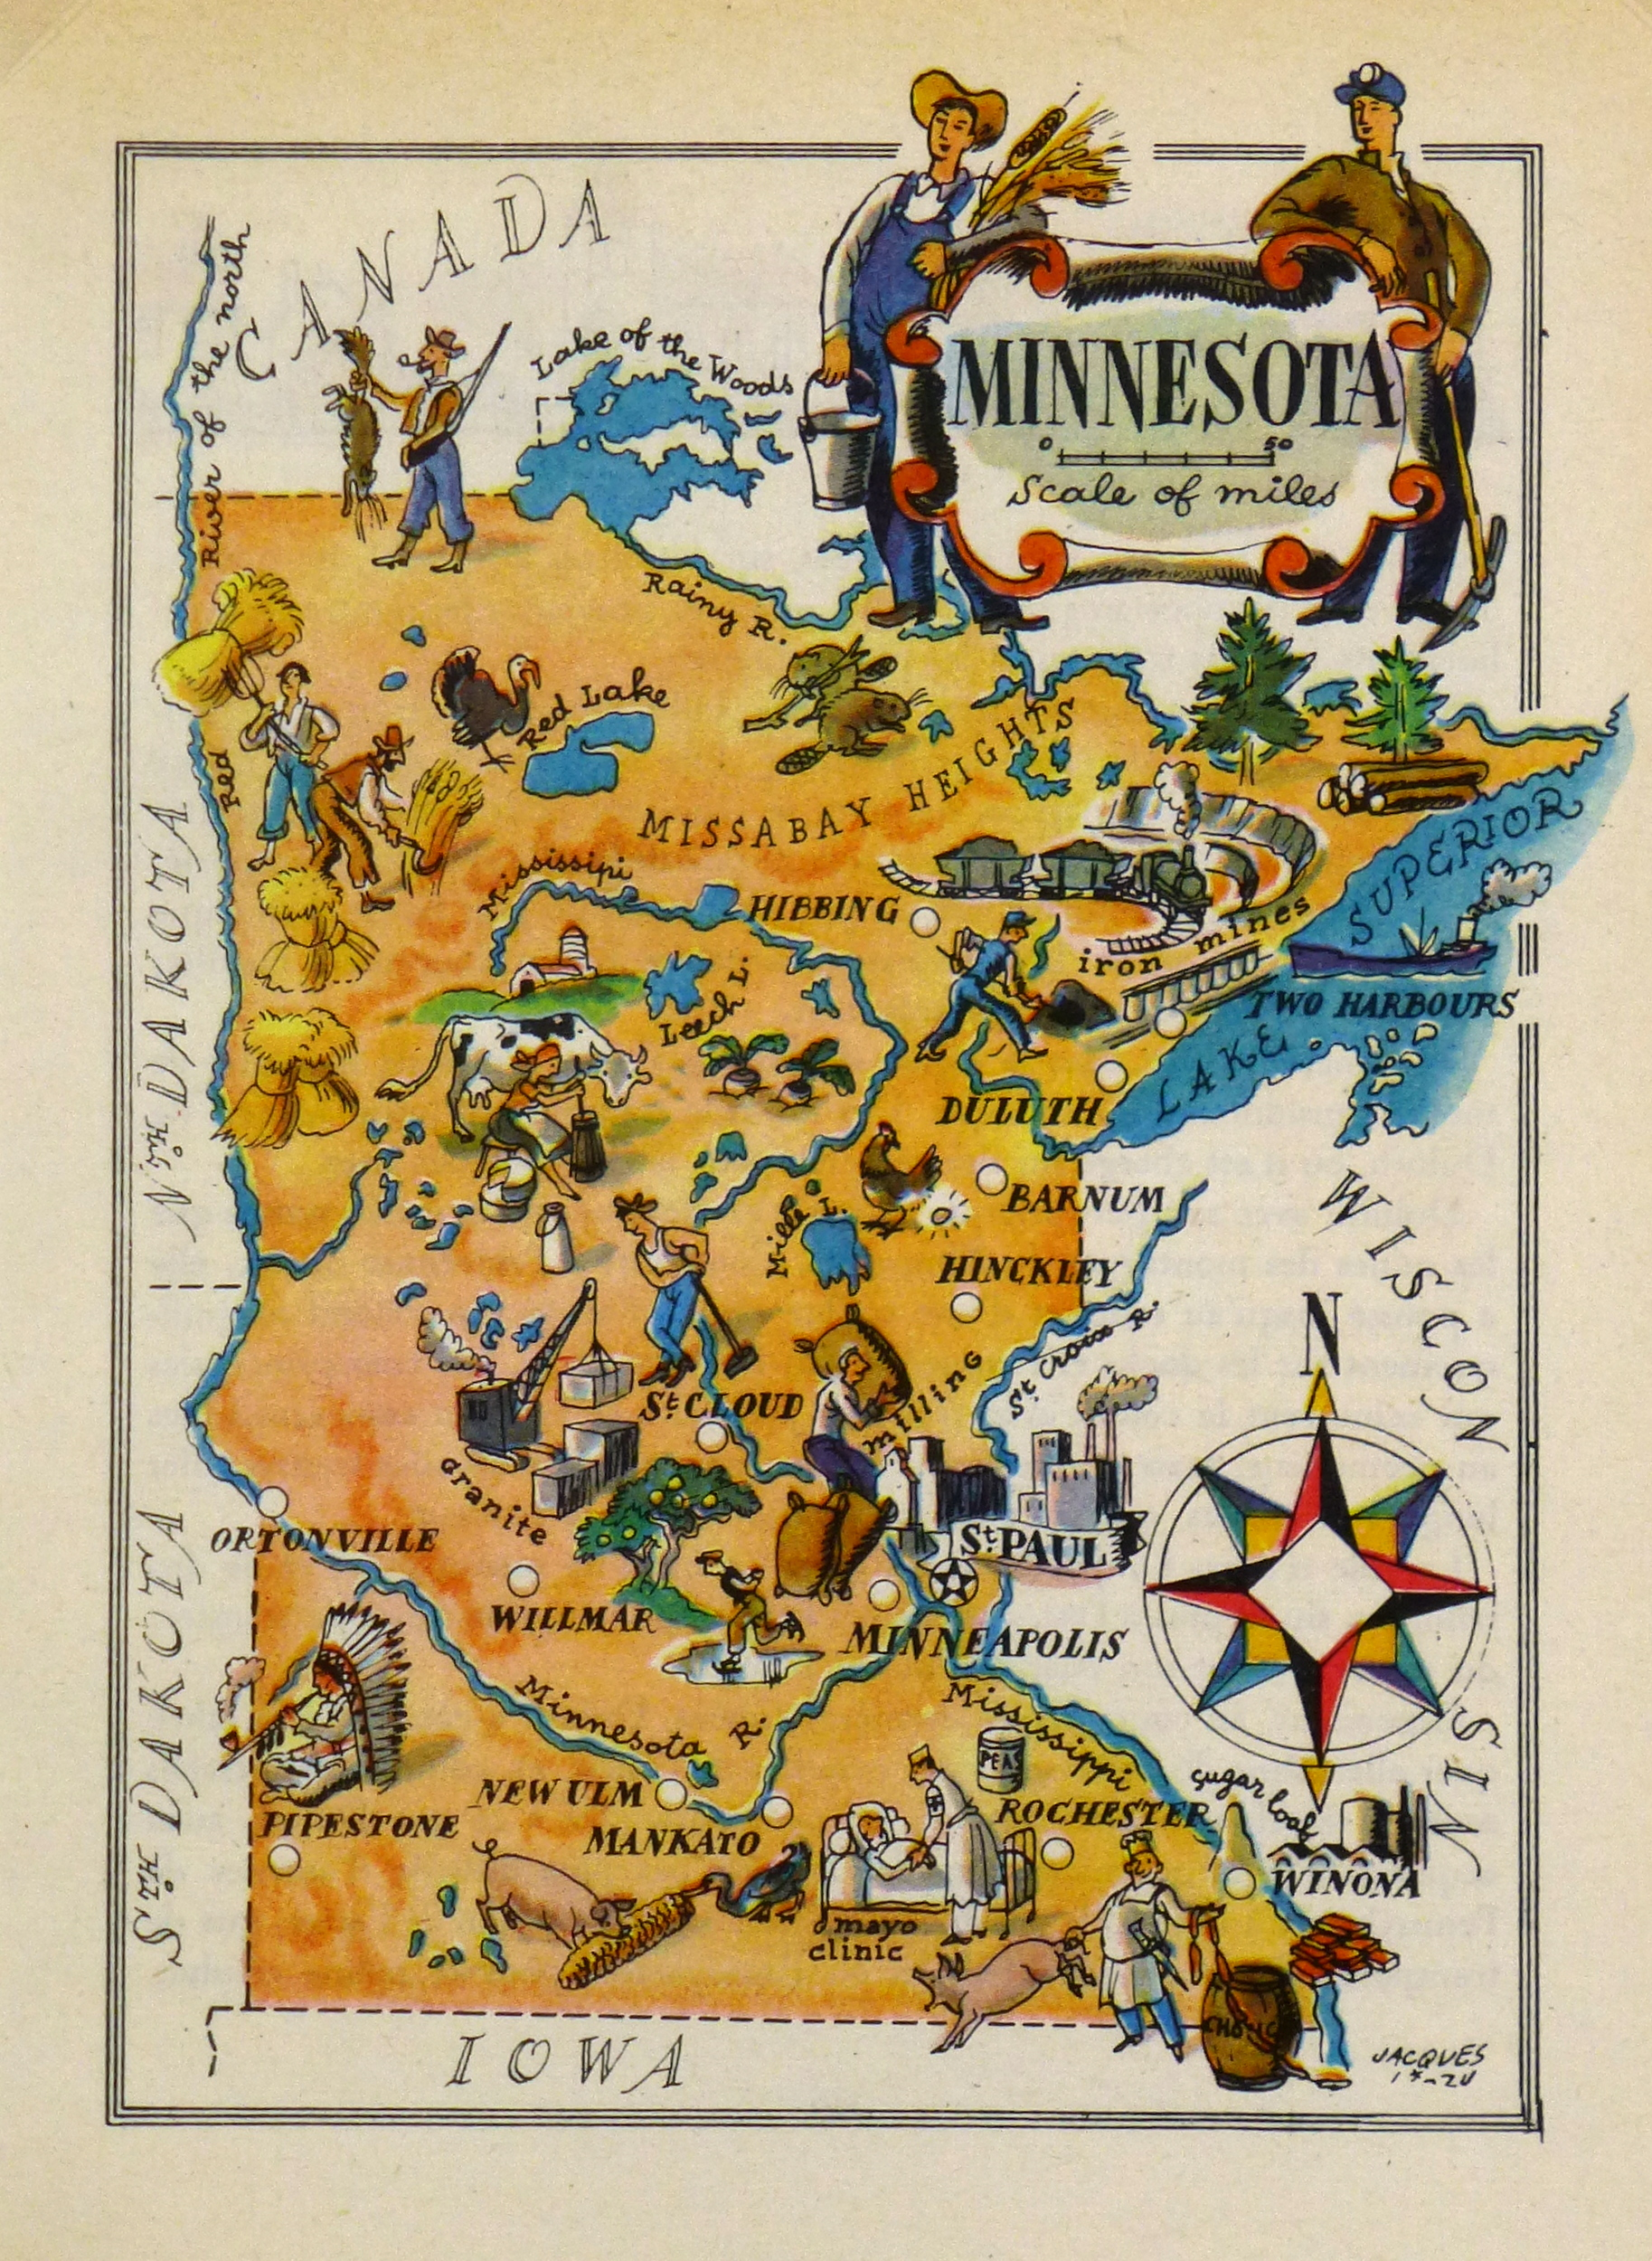 Minnesota Pictorial Map, 1946-main-6230K